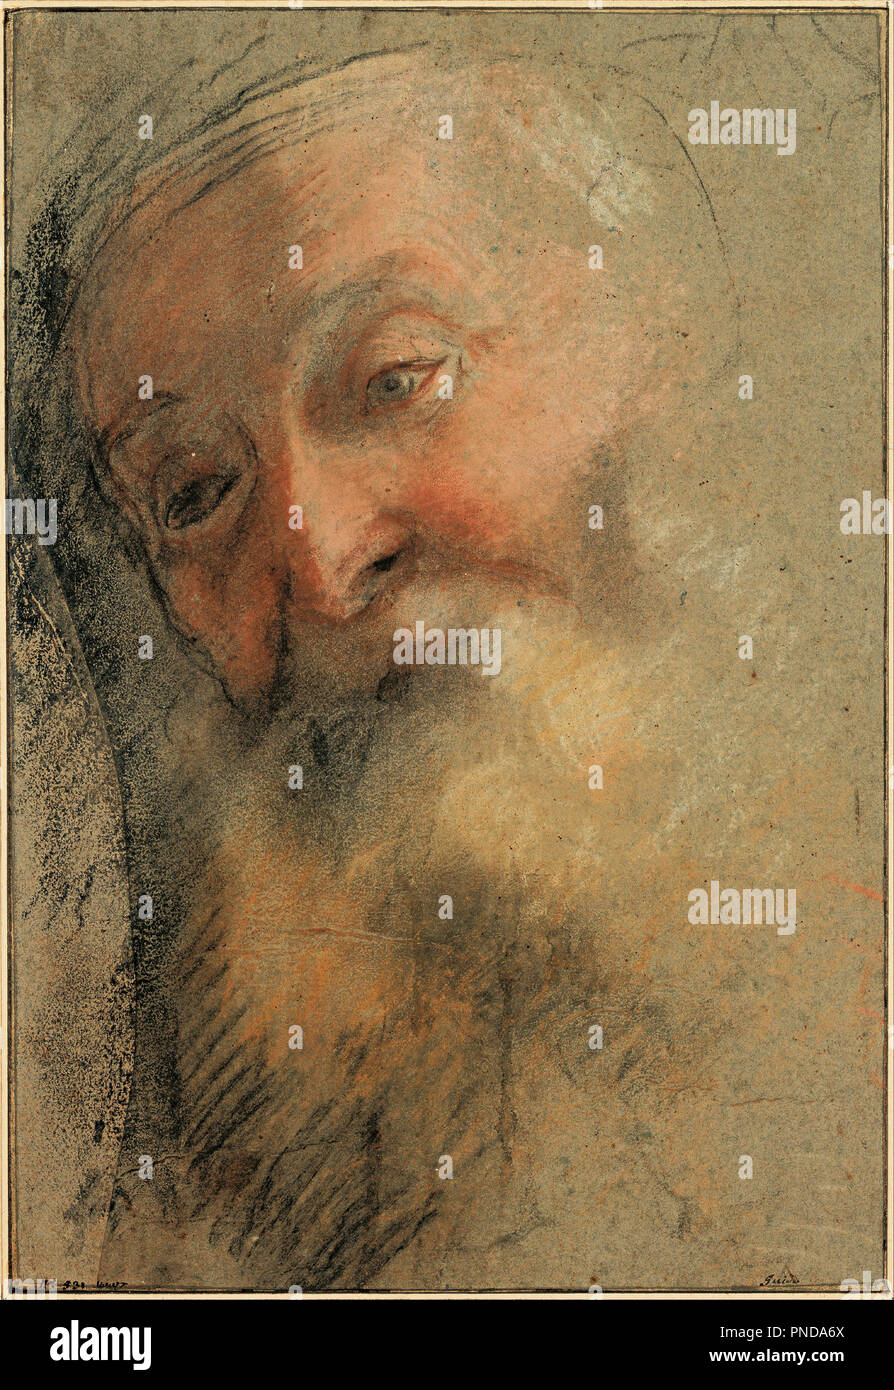 Head of an Old Bearded Man, 1584-1586. Date/Period: From 1584 until 1586. Drawing. Black chalk, white chalk, sanguine and pastel (Black, white, and red chalk, brown, ocher, and pink pastel). Author: BAROCCI, FEDERICO. Barocci, Federigo. Stock Photo